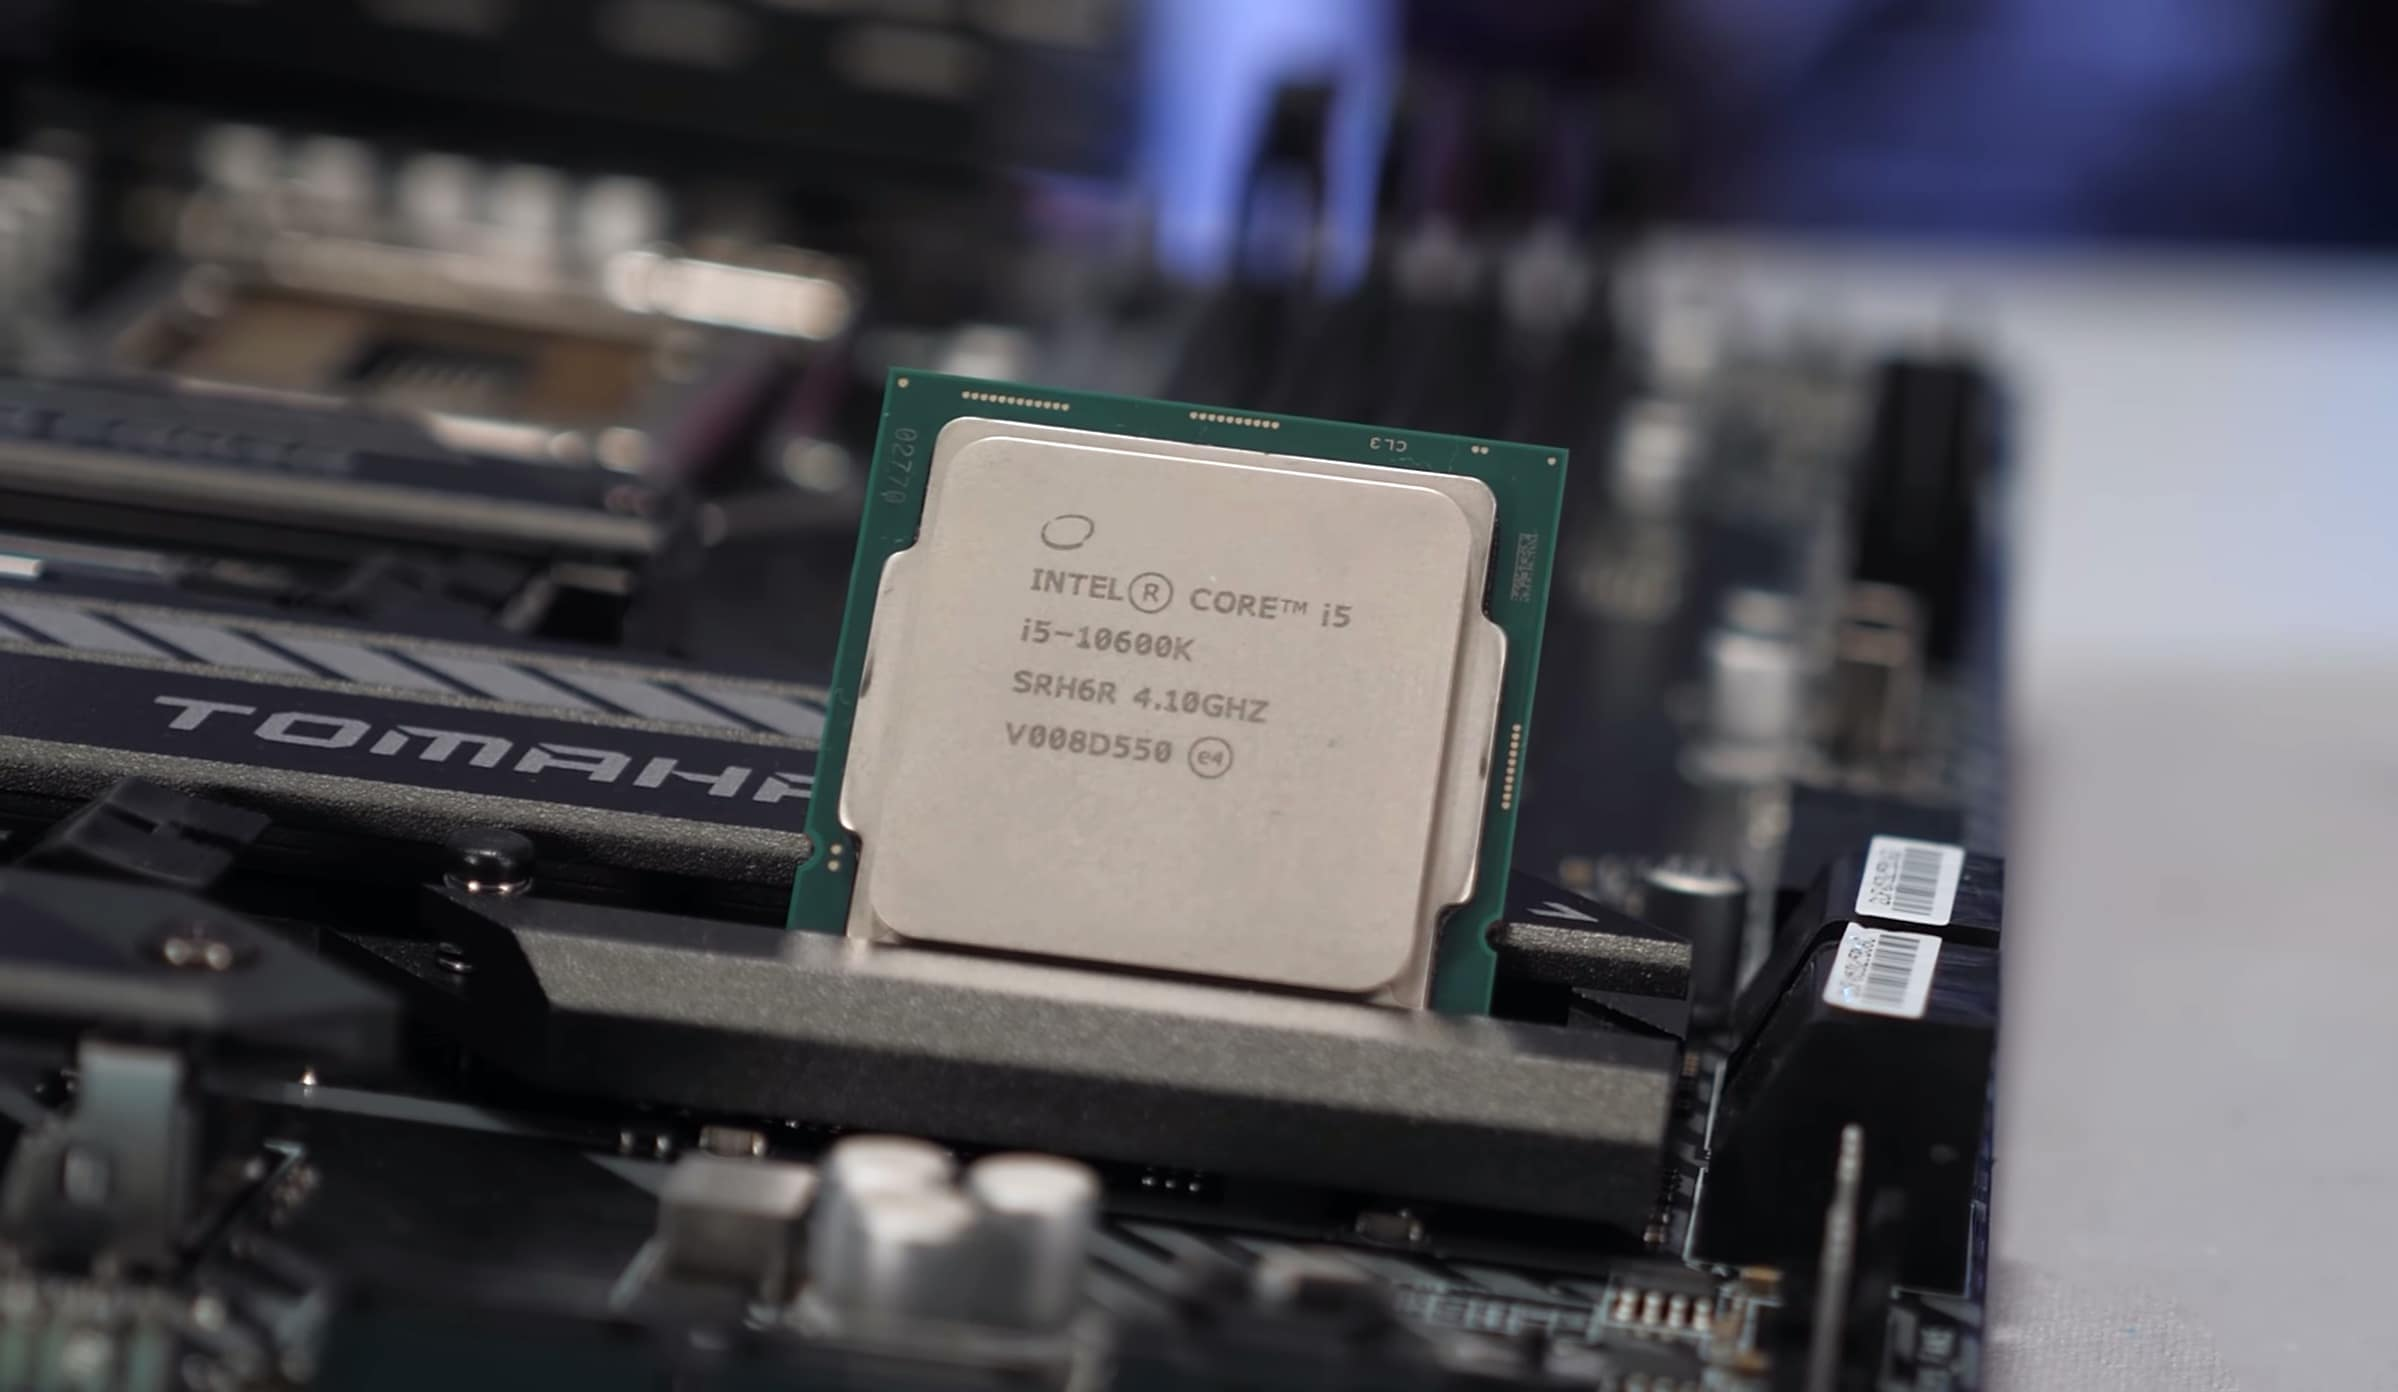 Intel 11900K and 11700K processors are annihilating the Geekbench single-core test